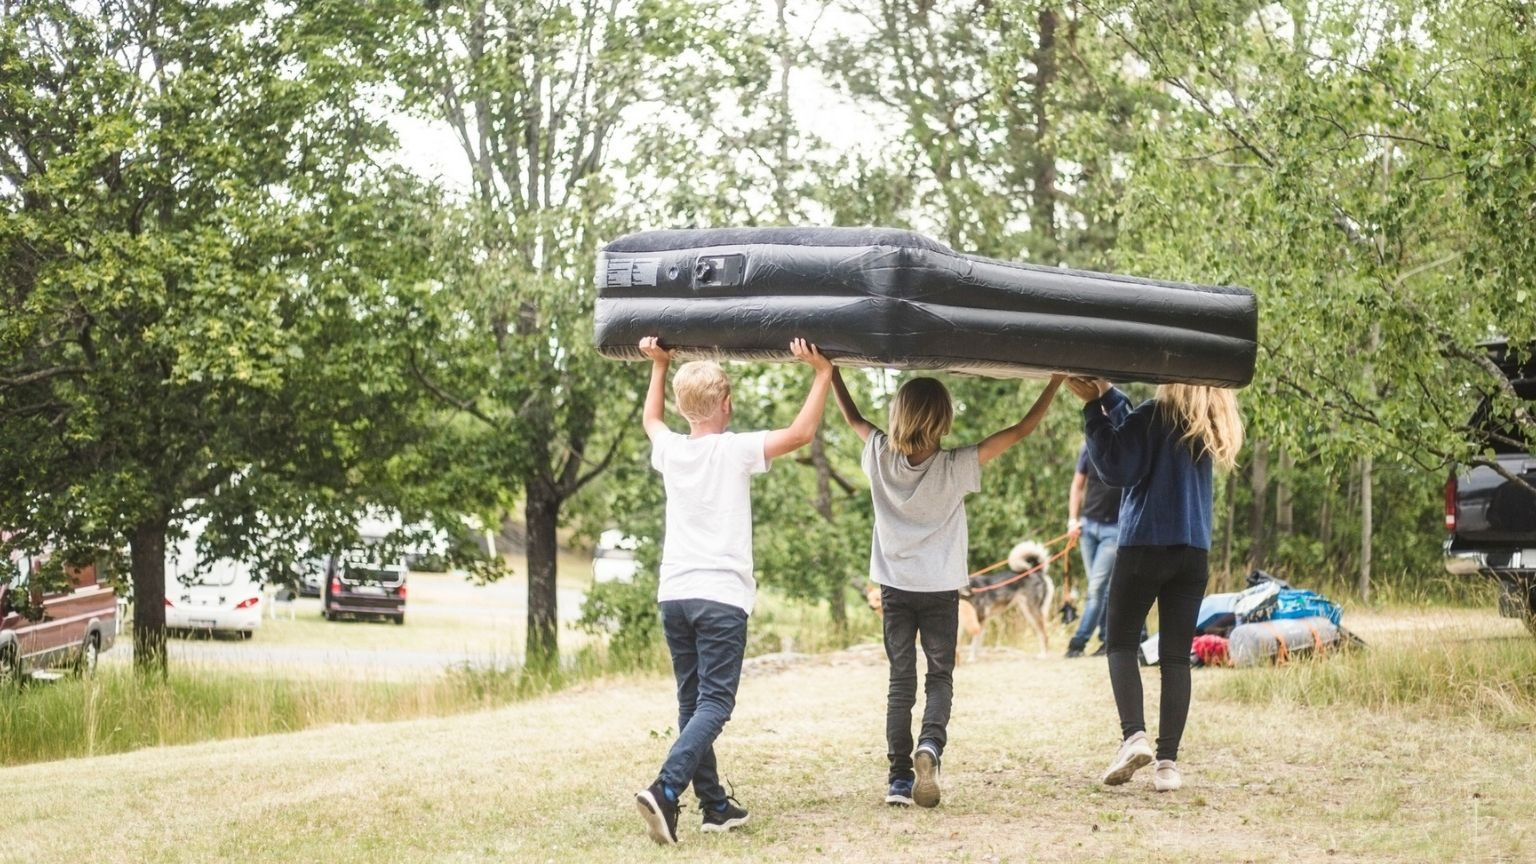 Children carrying inflatable mattres